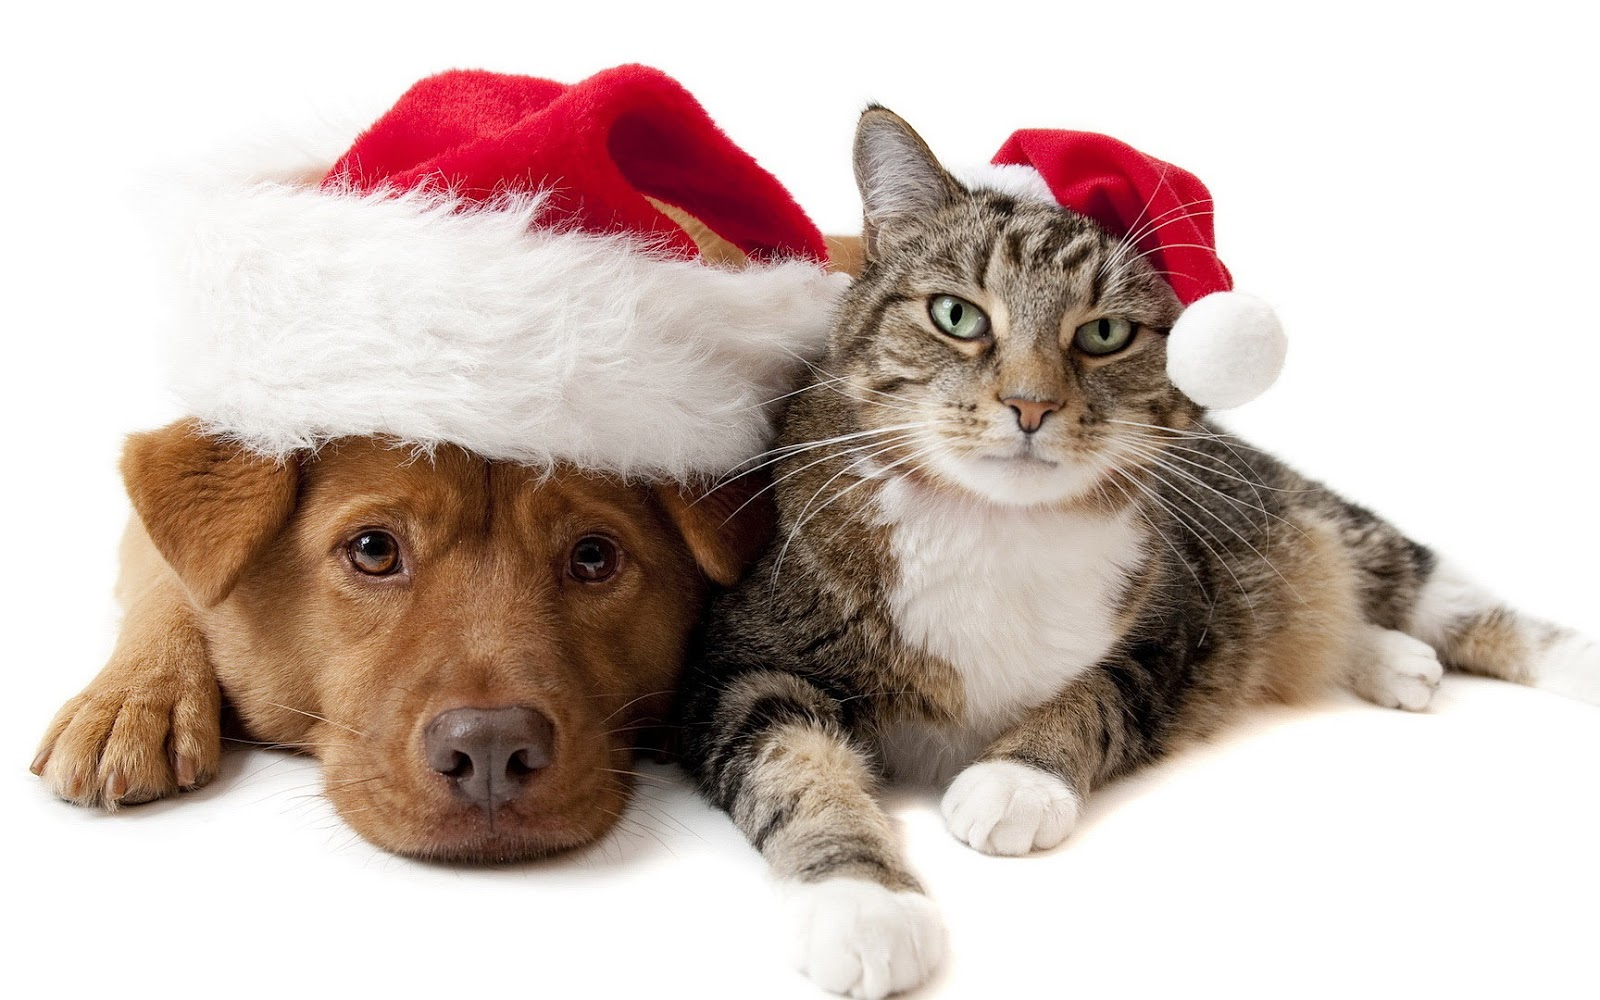 Dog & Cat with Christmas Hats